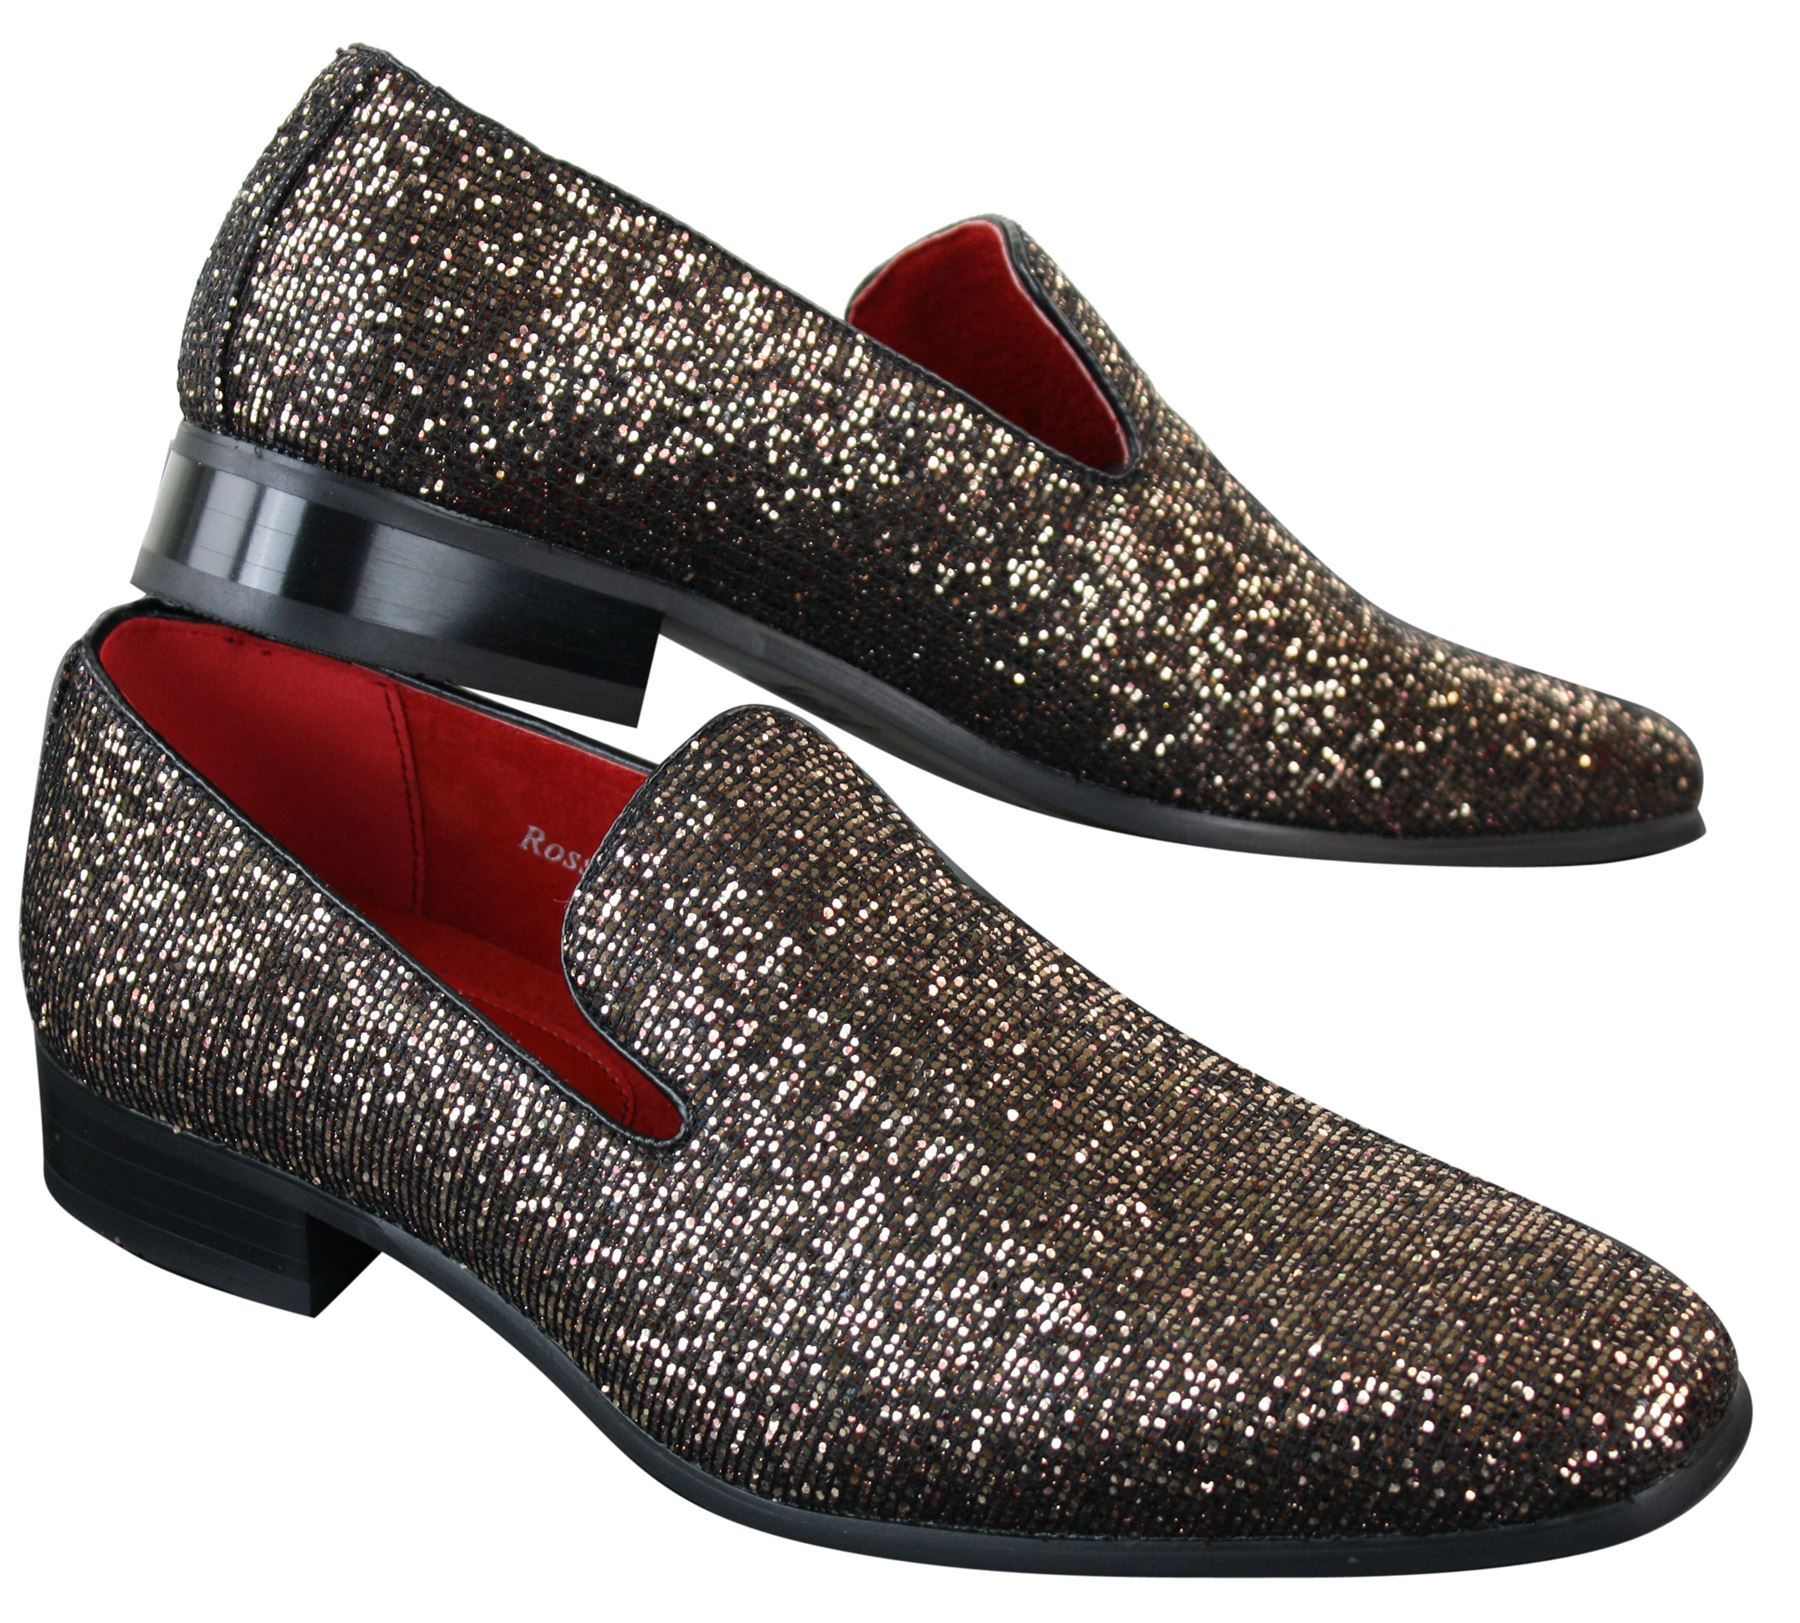 28ffb3a77a9c Mens Shiny Silver Gold Black Slip On Glitter Shoes Party Smart ...